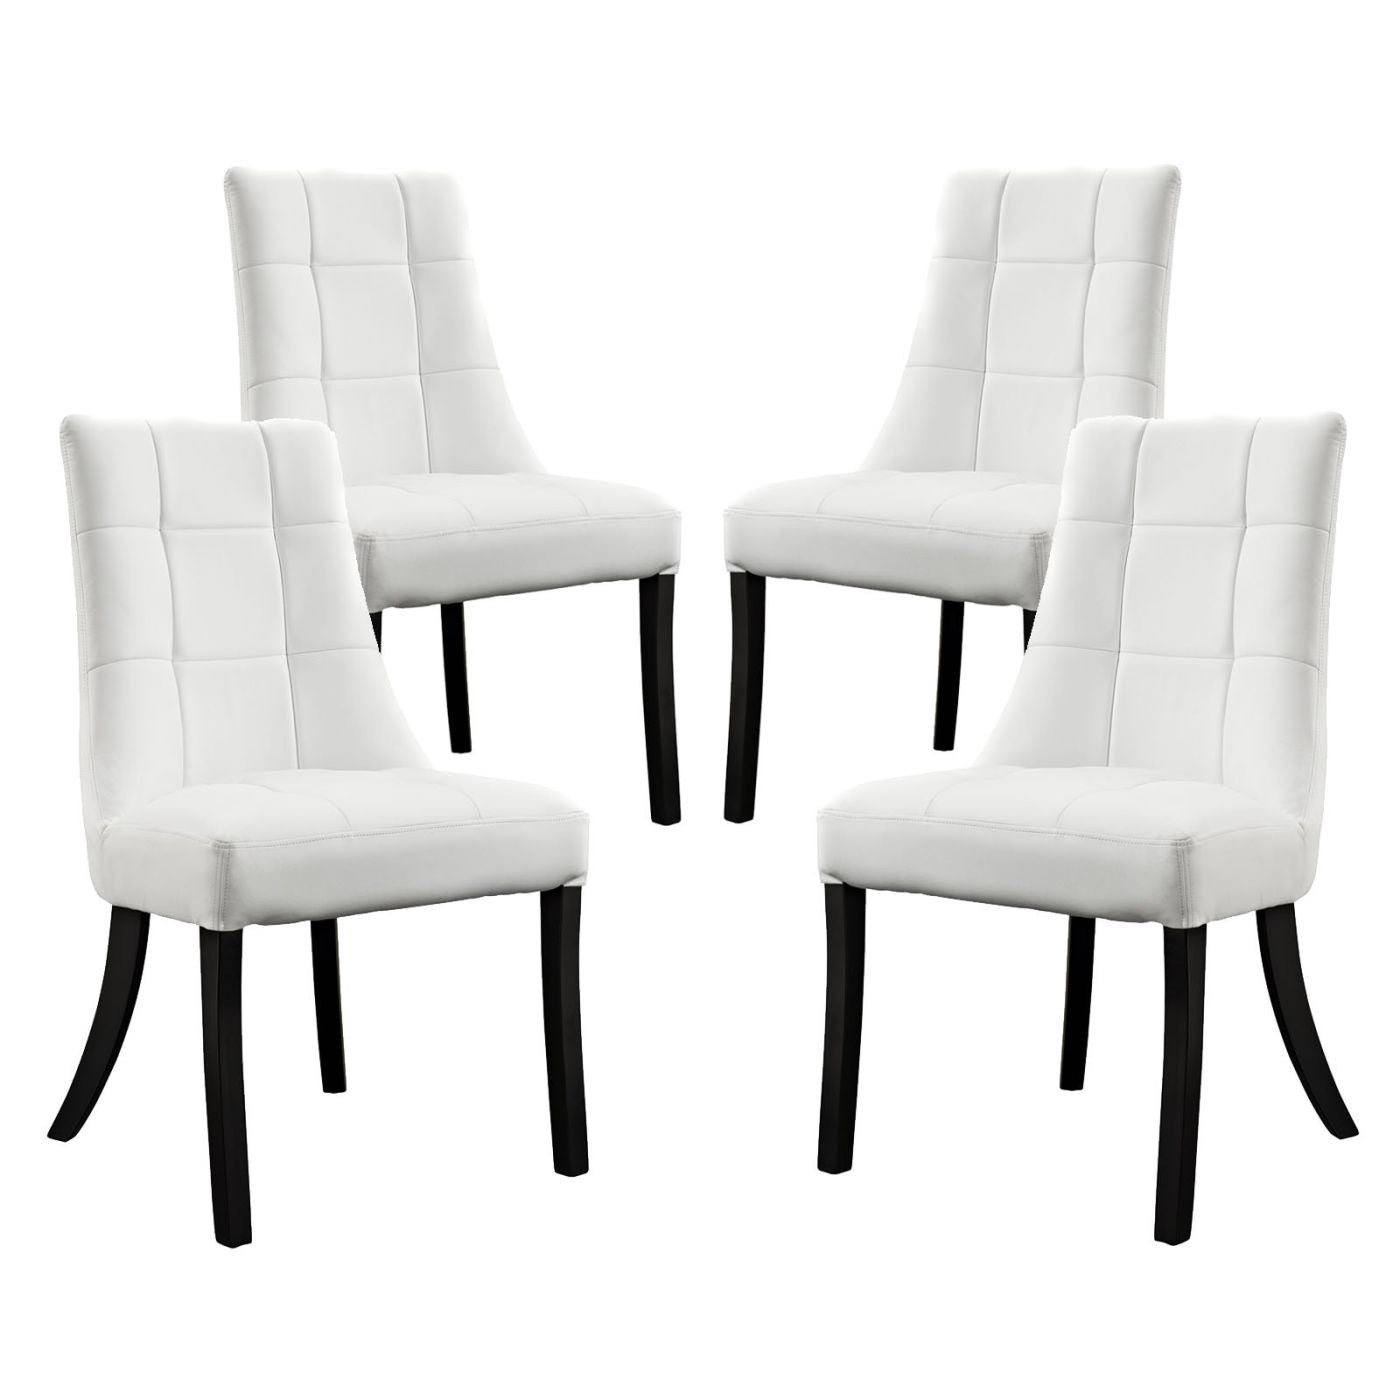 Awesome Modway Dining Sets On Sale Eei 1678 Whi Noblesse Faux Leather Dining Chair Set Of 4 Only Only 517 80 At Contemporary Furniture Warehouse Ibusinesslaw Wood Chair Design Ideas Ibusinesslaworg